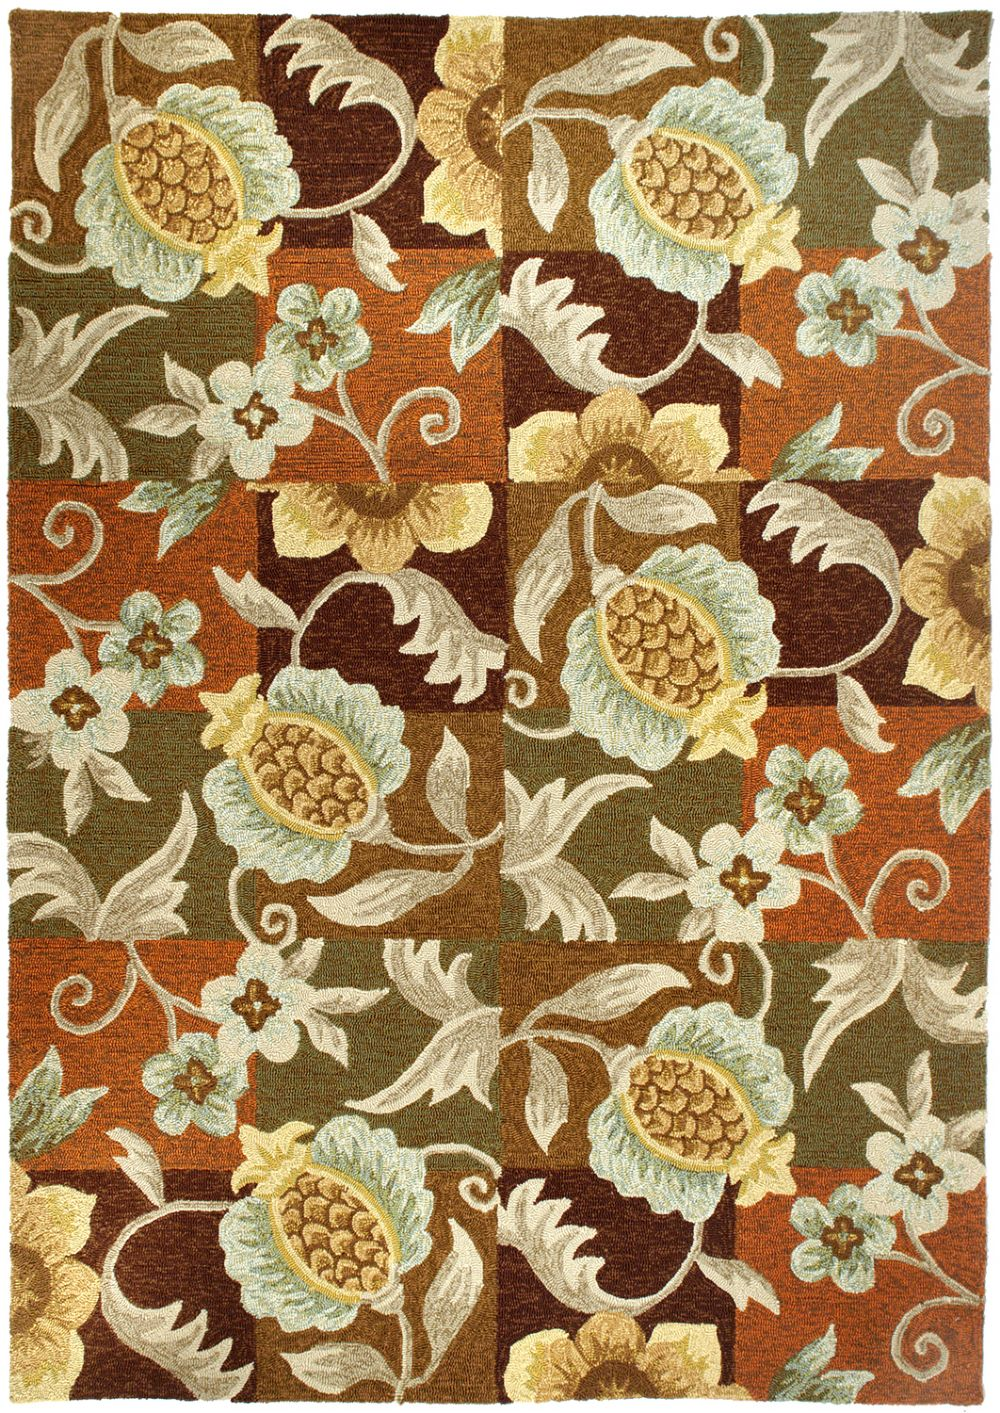 homefires tropical pineapple & flowers contemporary area rug collection